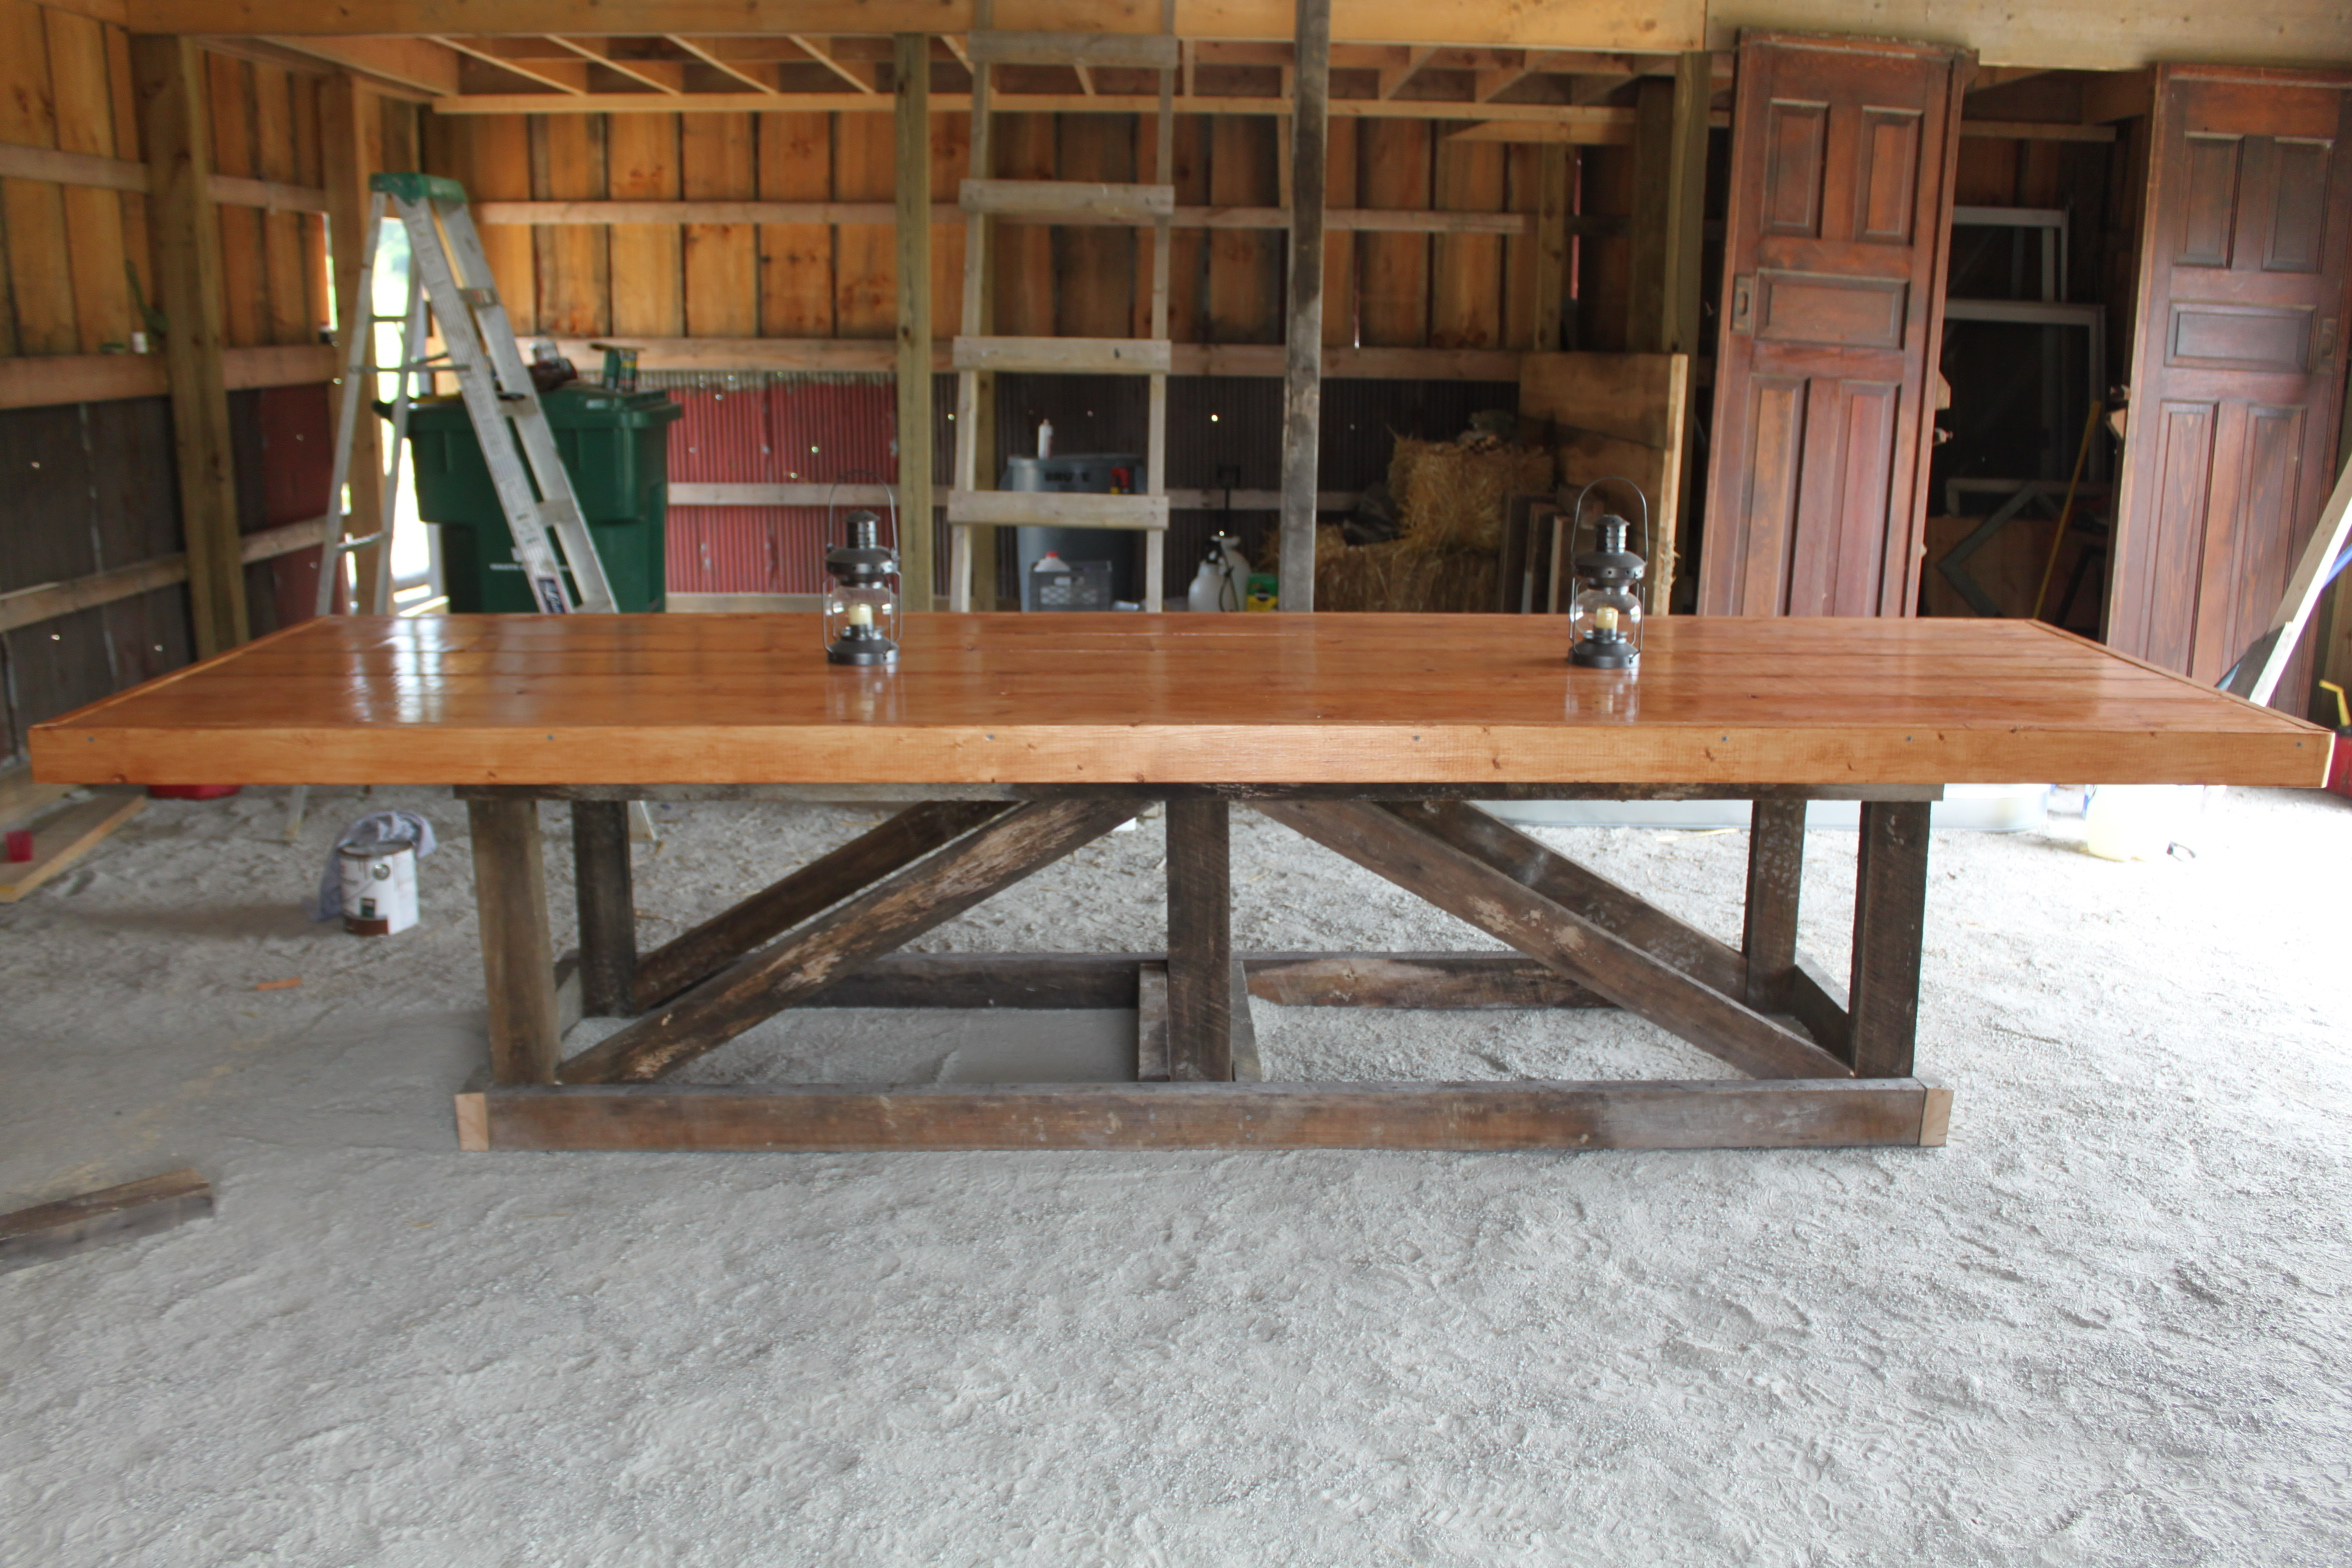 Wood Work Trestle Table Plans This Old House PDF Plans